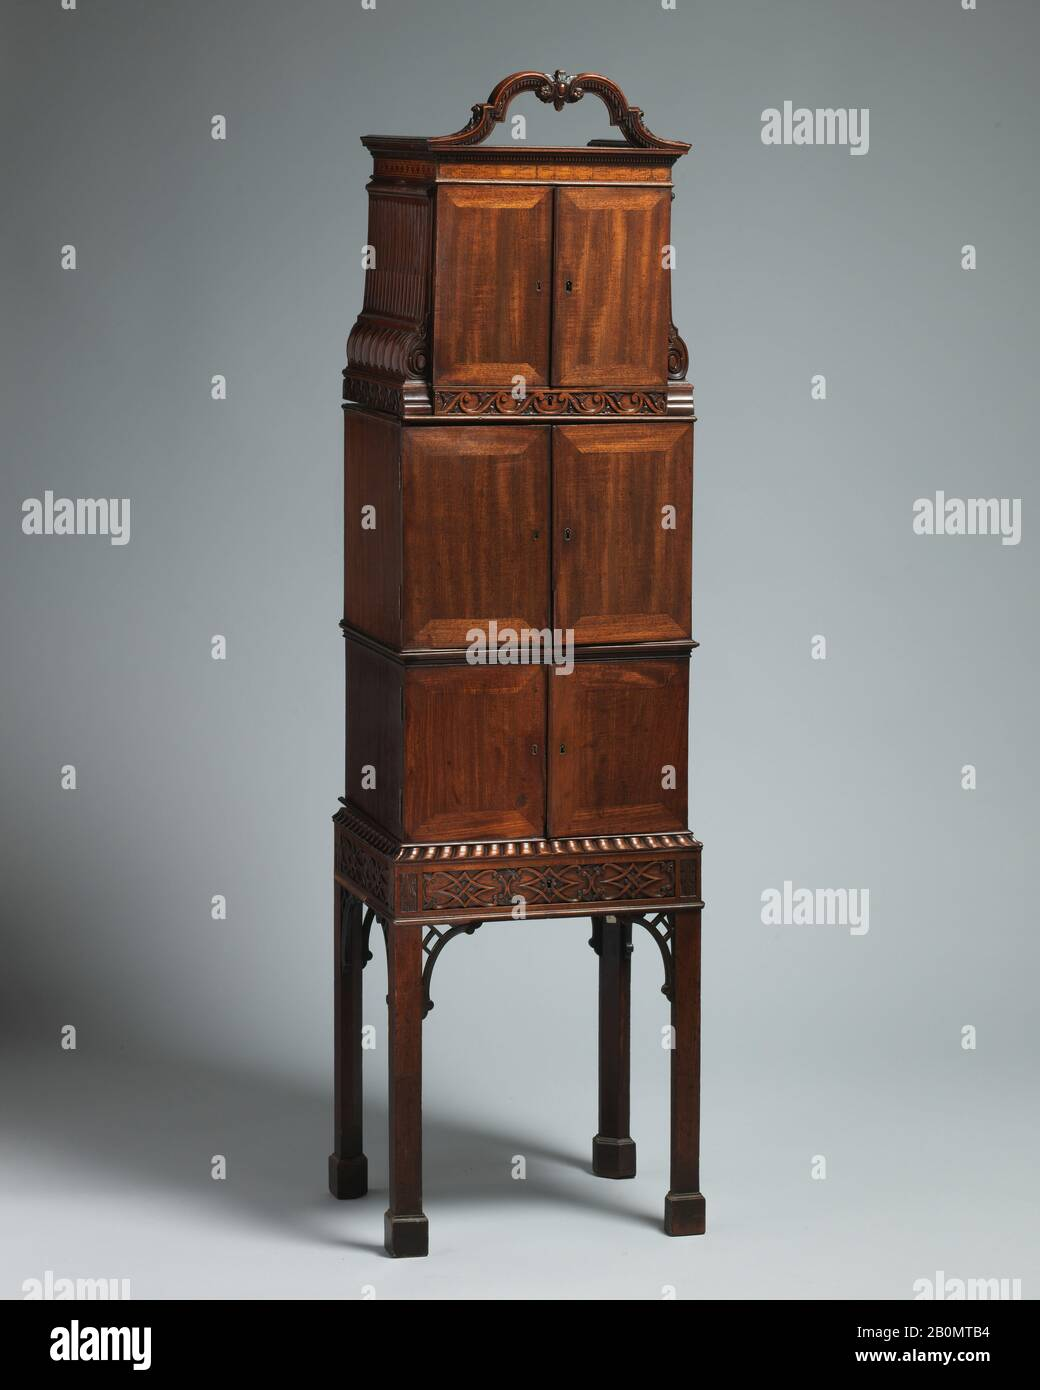 Mahogany Cabinet High Resolution Stock Photography And Images Alamy